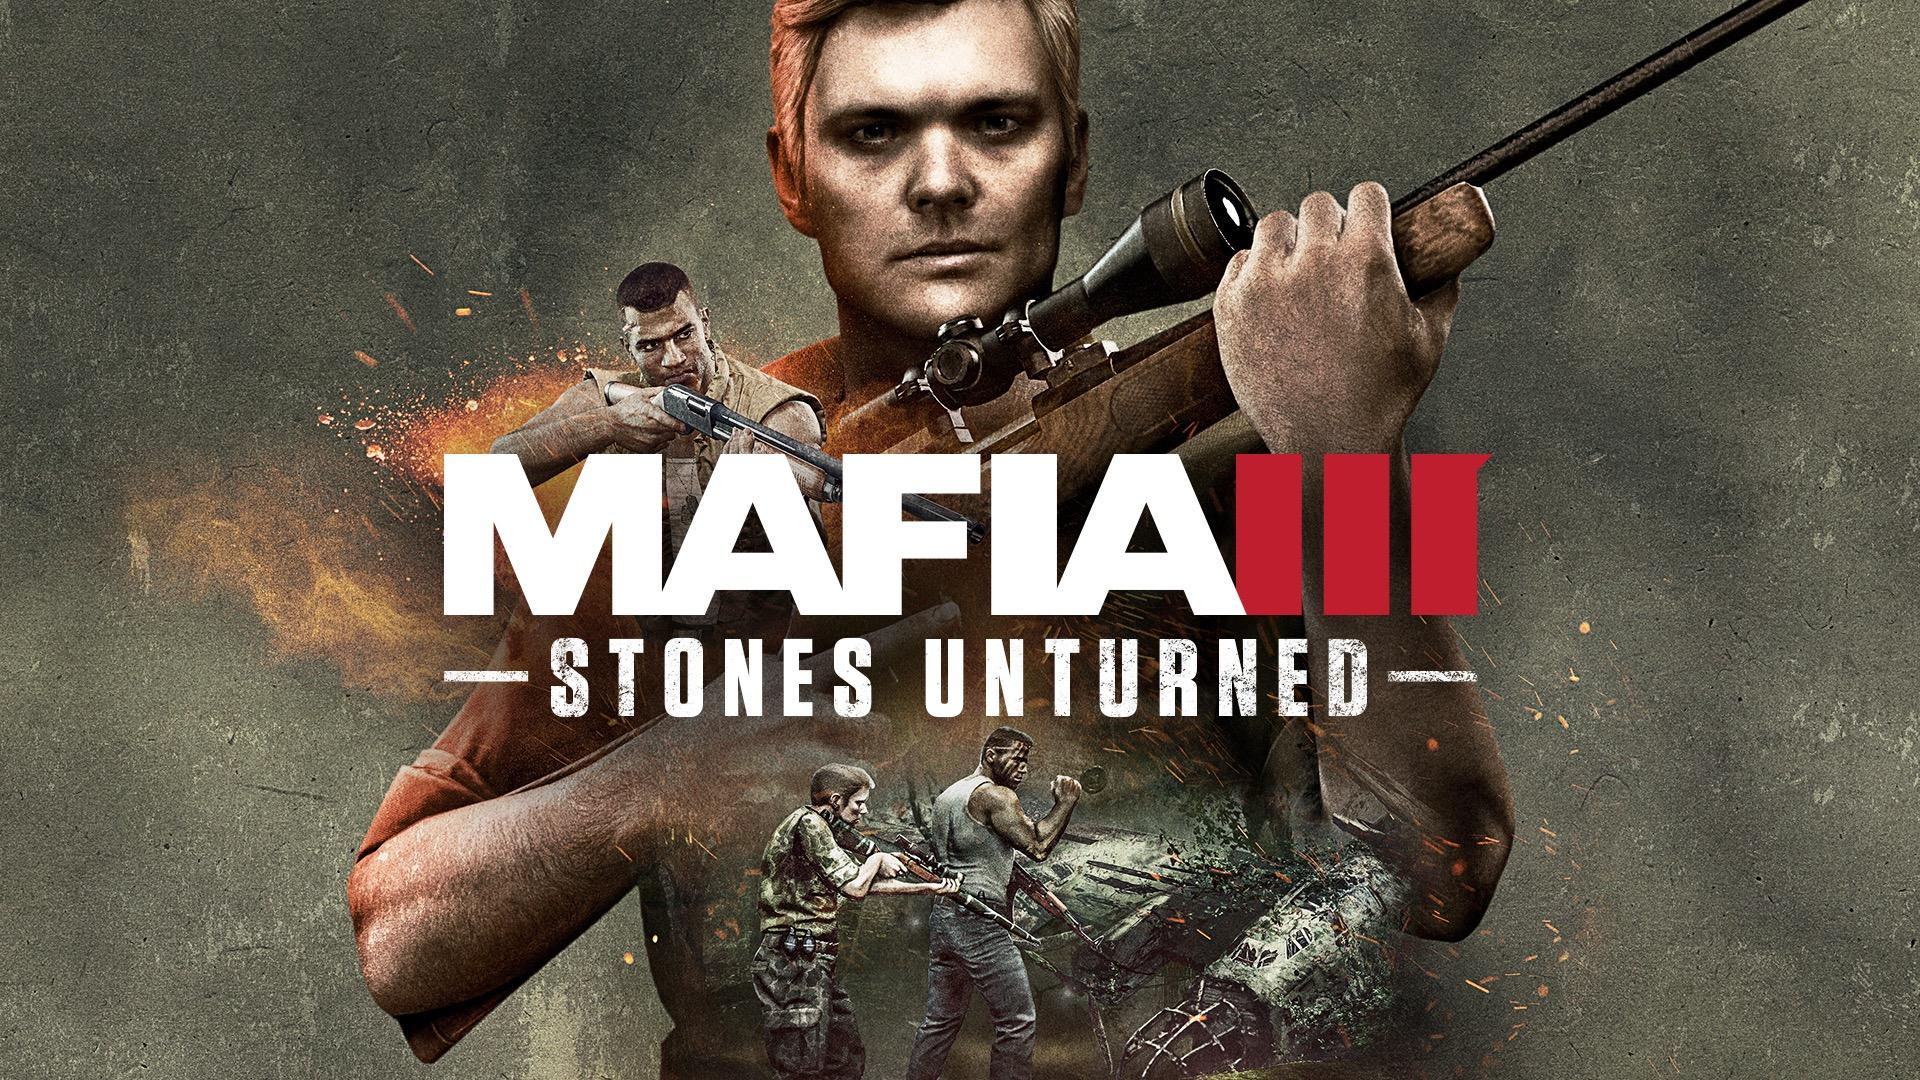 Mafia III: Stones Unturned DLC is out now